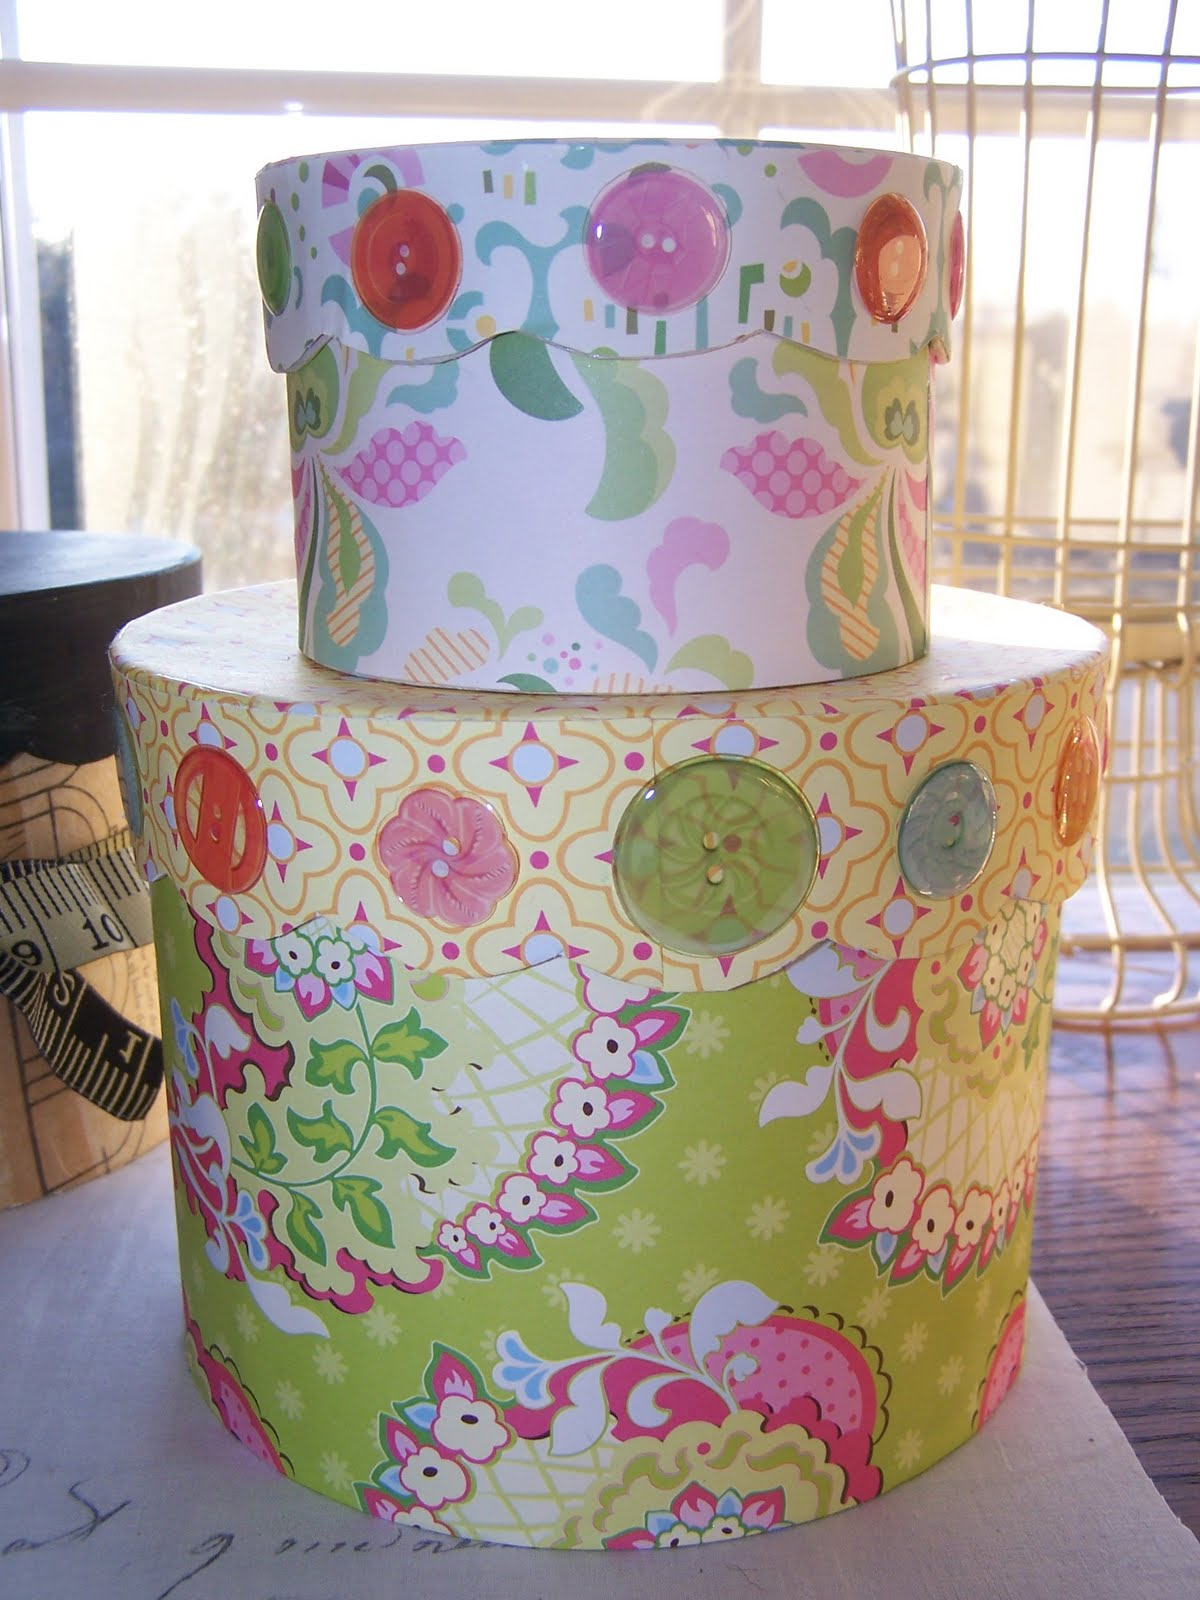 lilly pulitzer wrapping paper Wrapping paper inspired by lilly pulitzer, this is an original design by artist shann spishak can be used for crafting projects and beautiful gift wrapping.